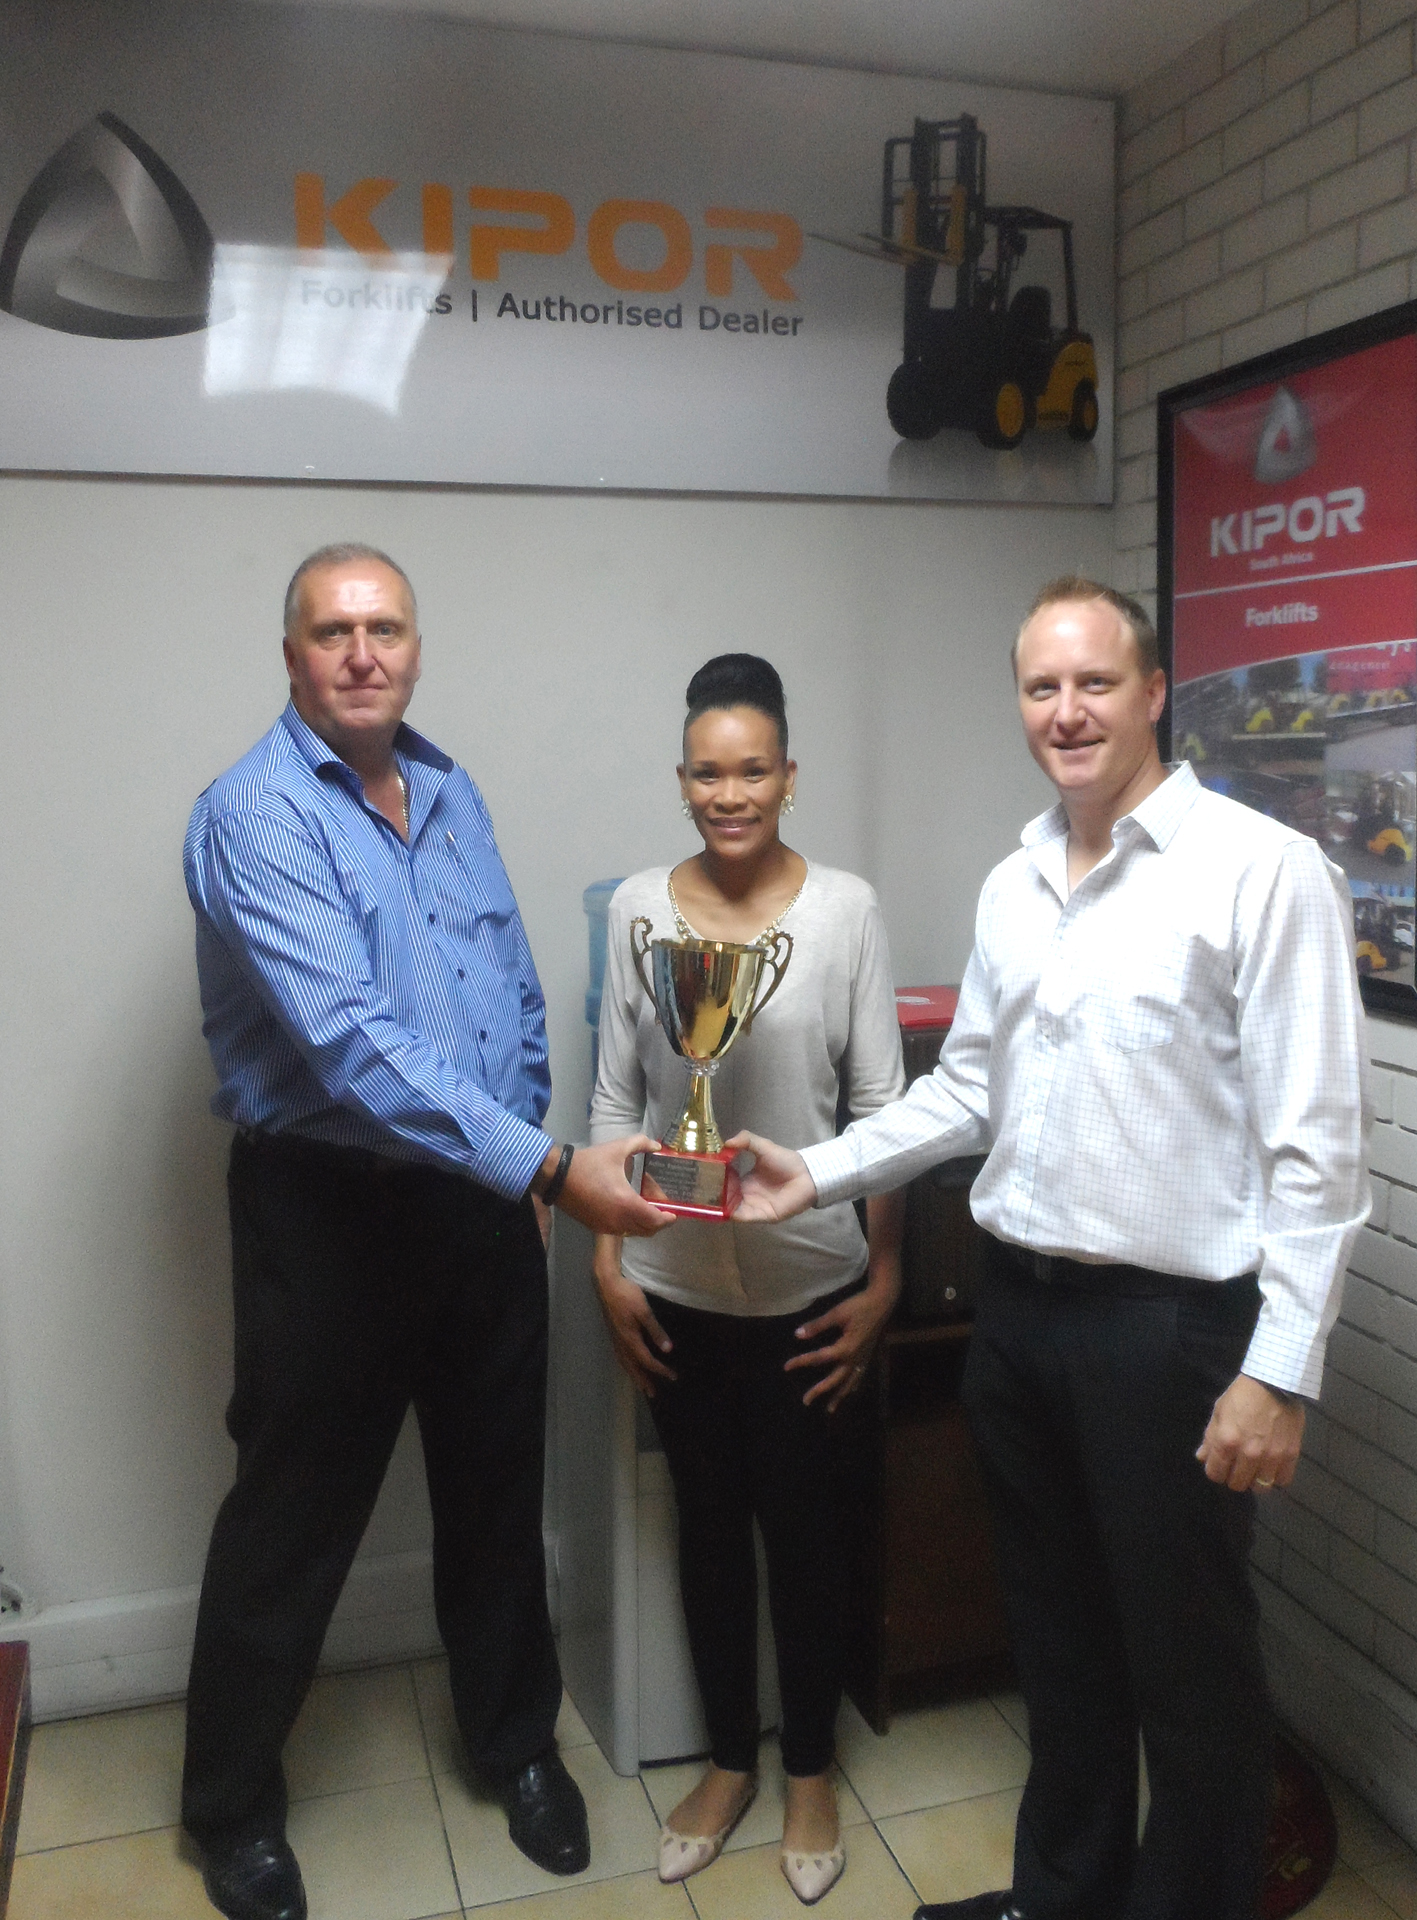 Left to Right: Garry Davies (Operations Director - Action Equipment Company) Yolanda Jeffries (Marketing Manager - Action Equipment Company) Tom Bloom (General Manager - Kipor South Africa, imported and distributed by Smith Power Equipment)